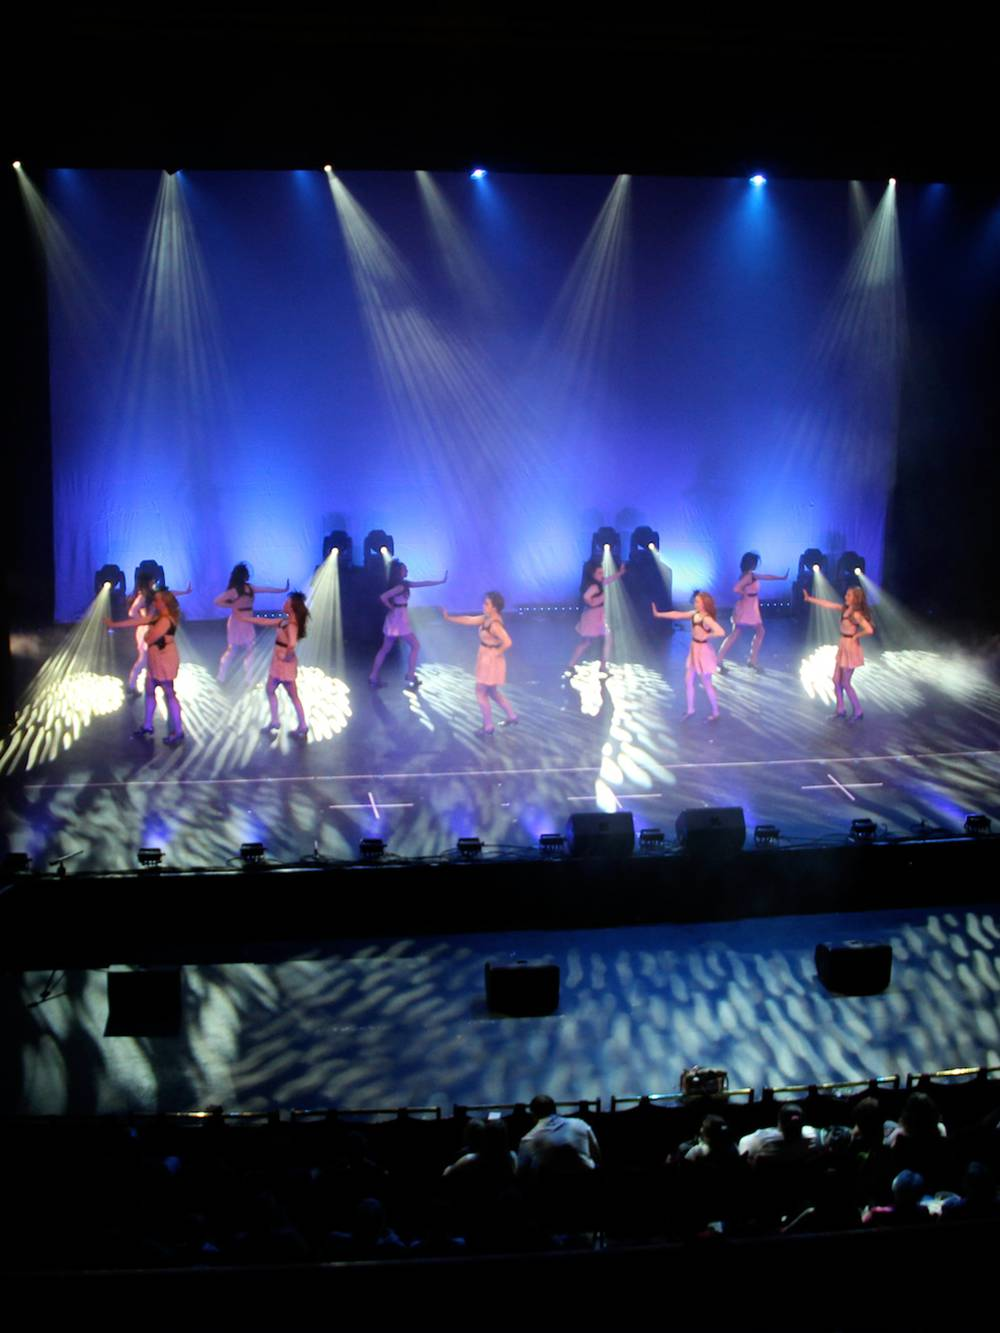 Lighting Hire for a Dance Show at Liverpool Empire Theatre